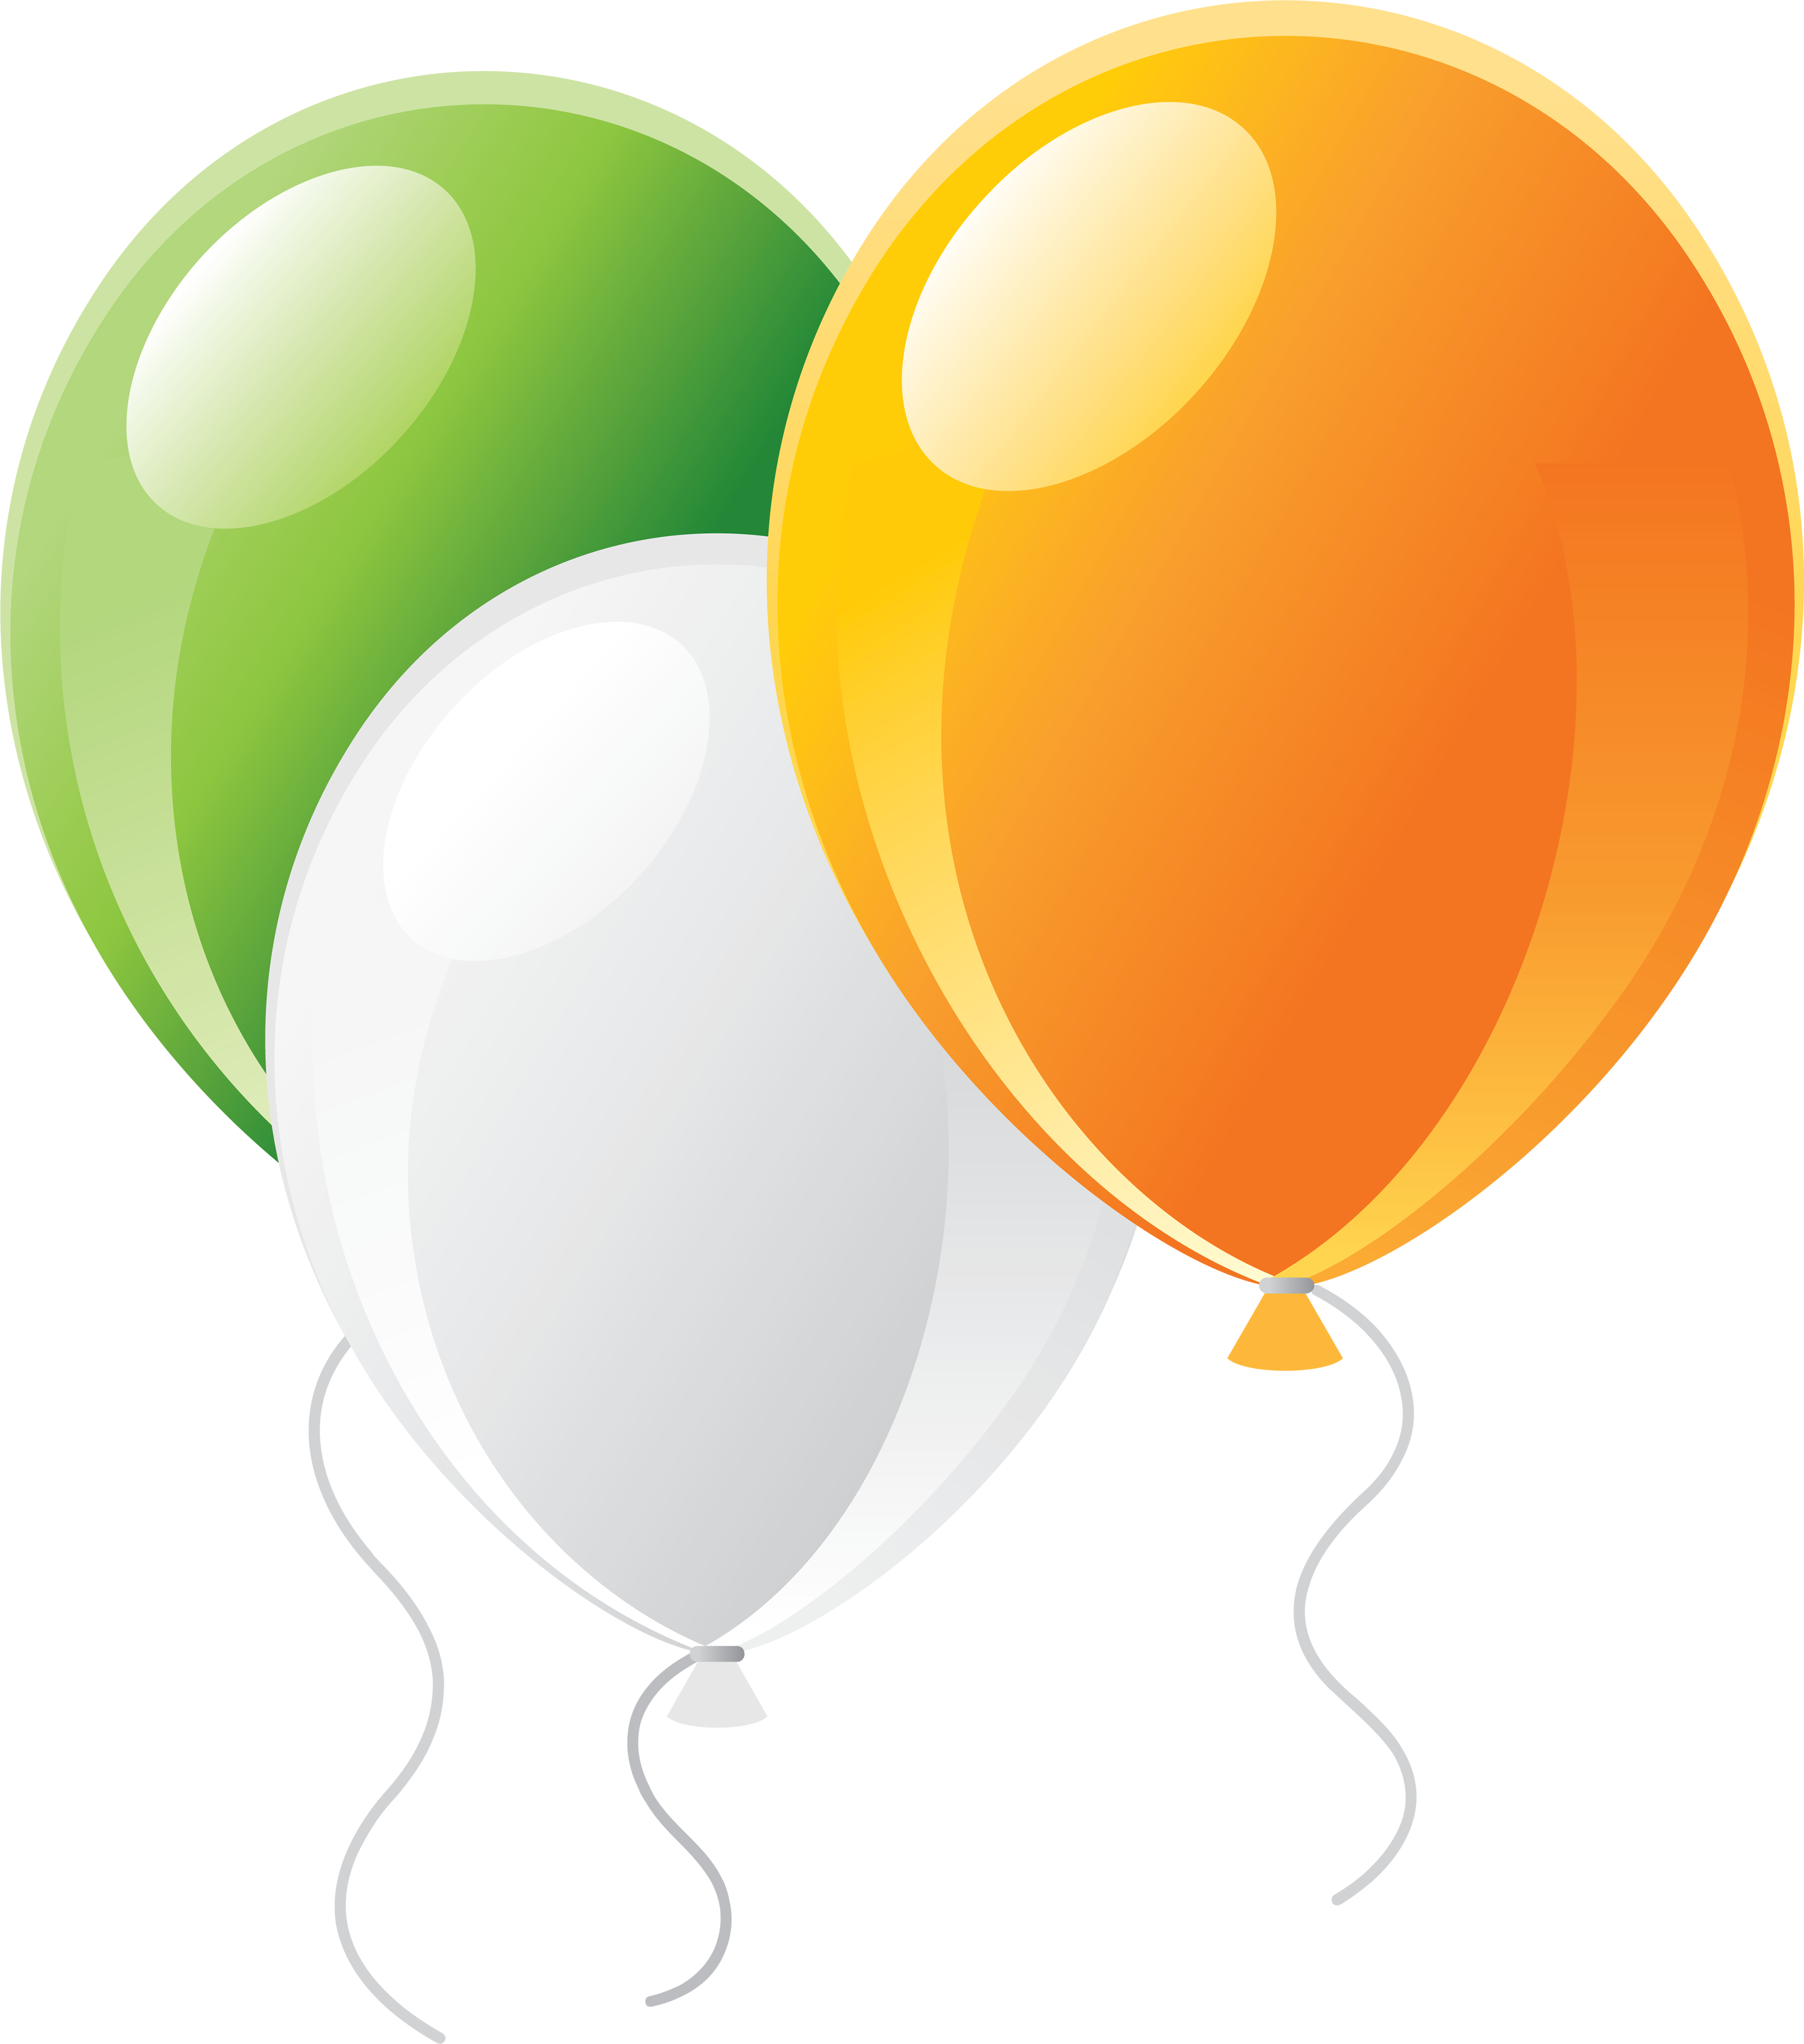 Balloon PNG images, free picture download with transparency.